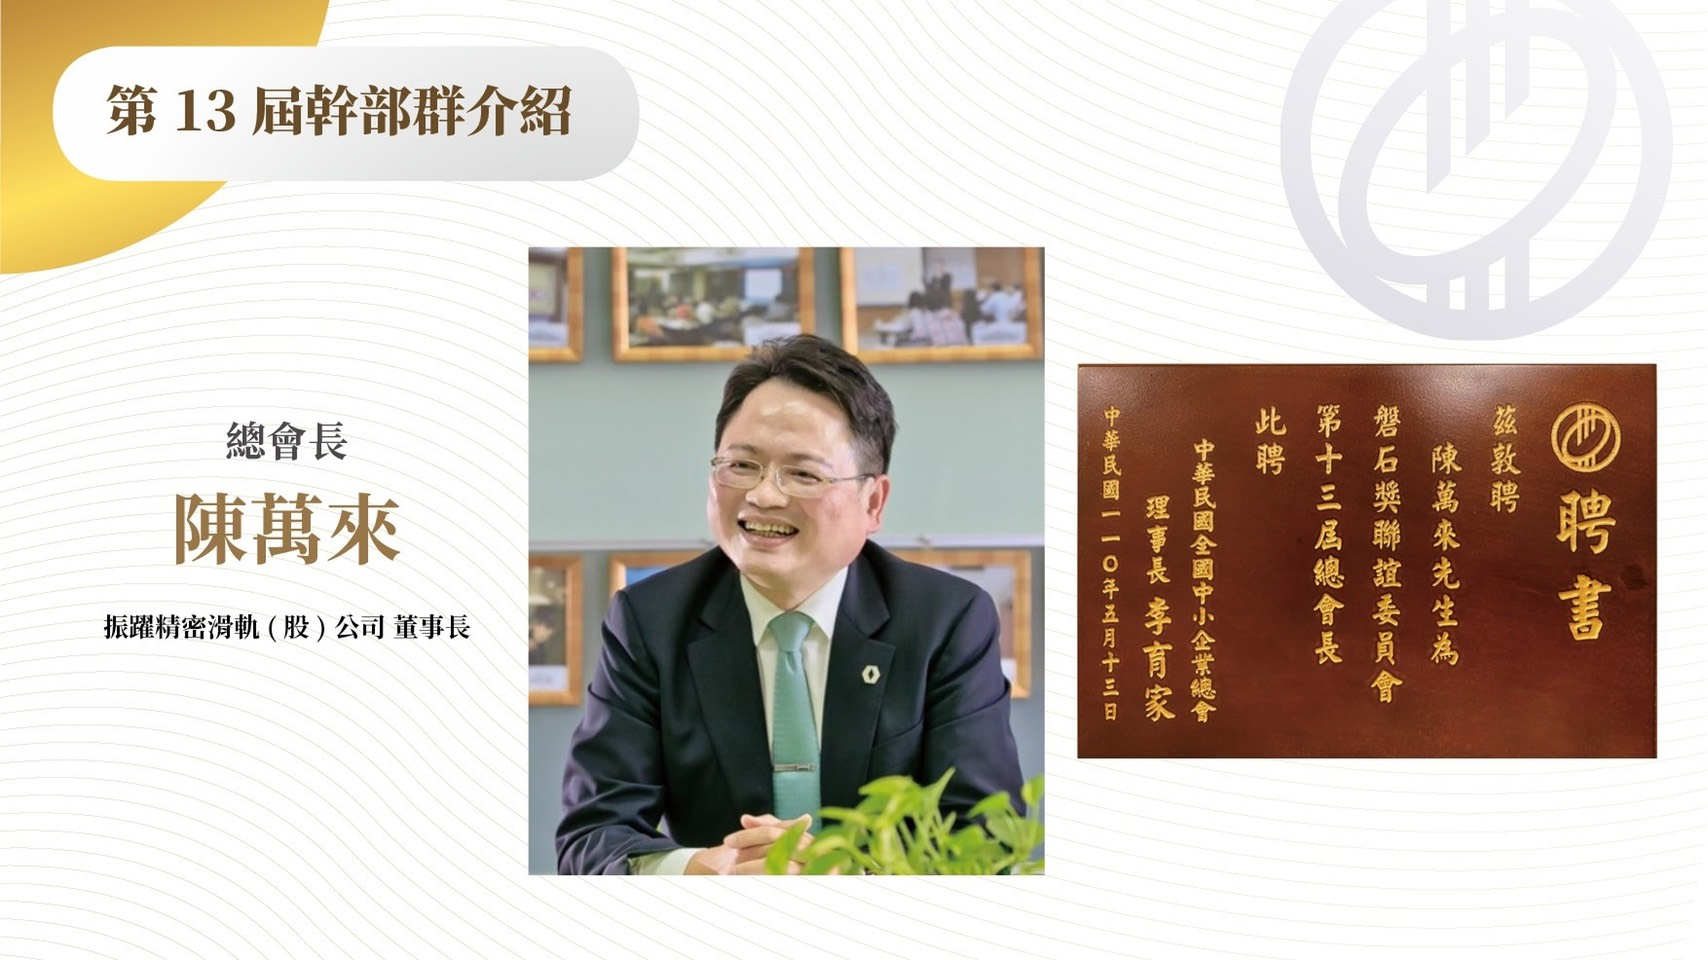 Congratulate! Gary Chen, president of Martas appointed as the 13th president of the Outstanding SMEs Award